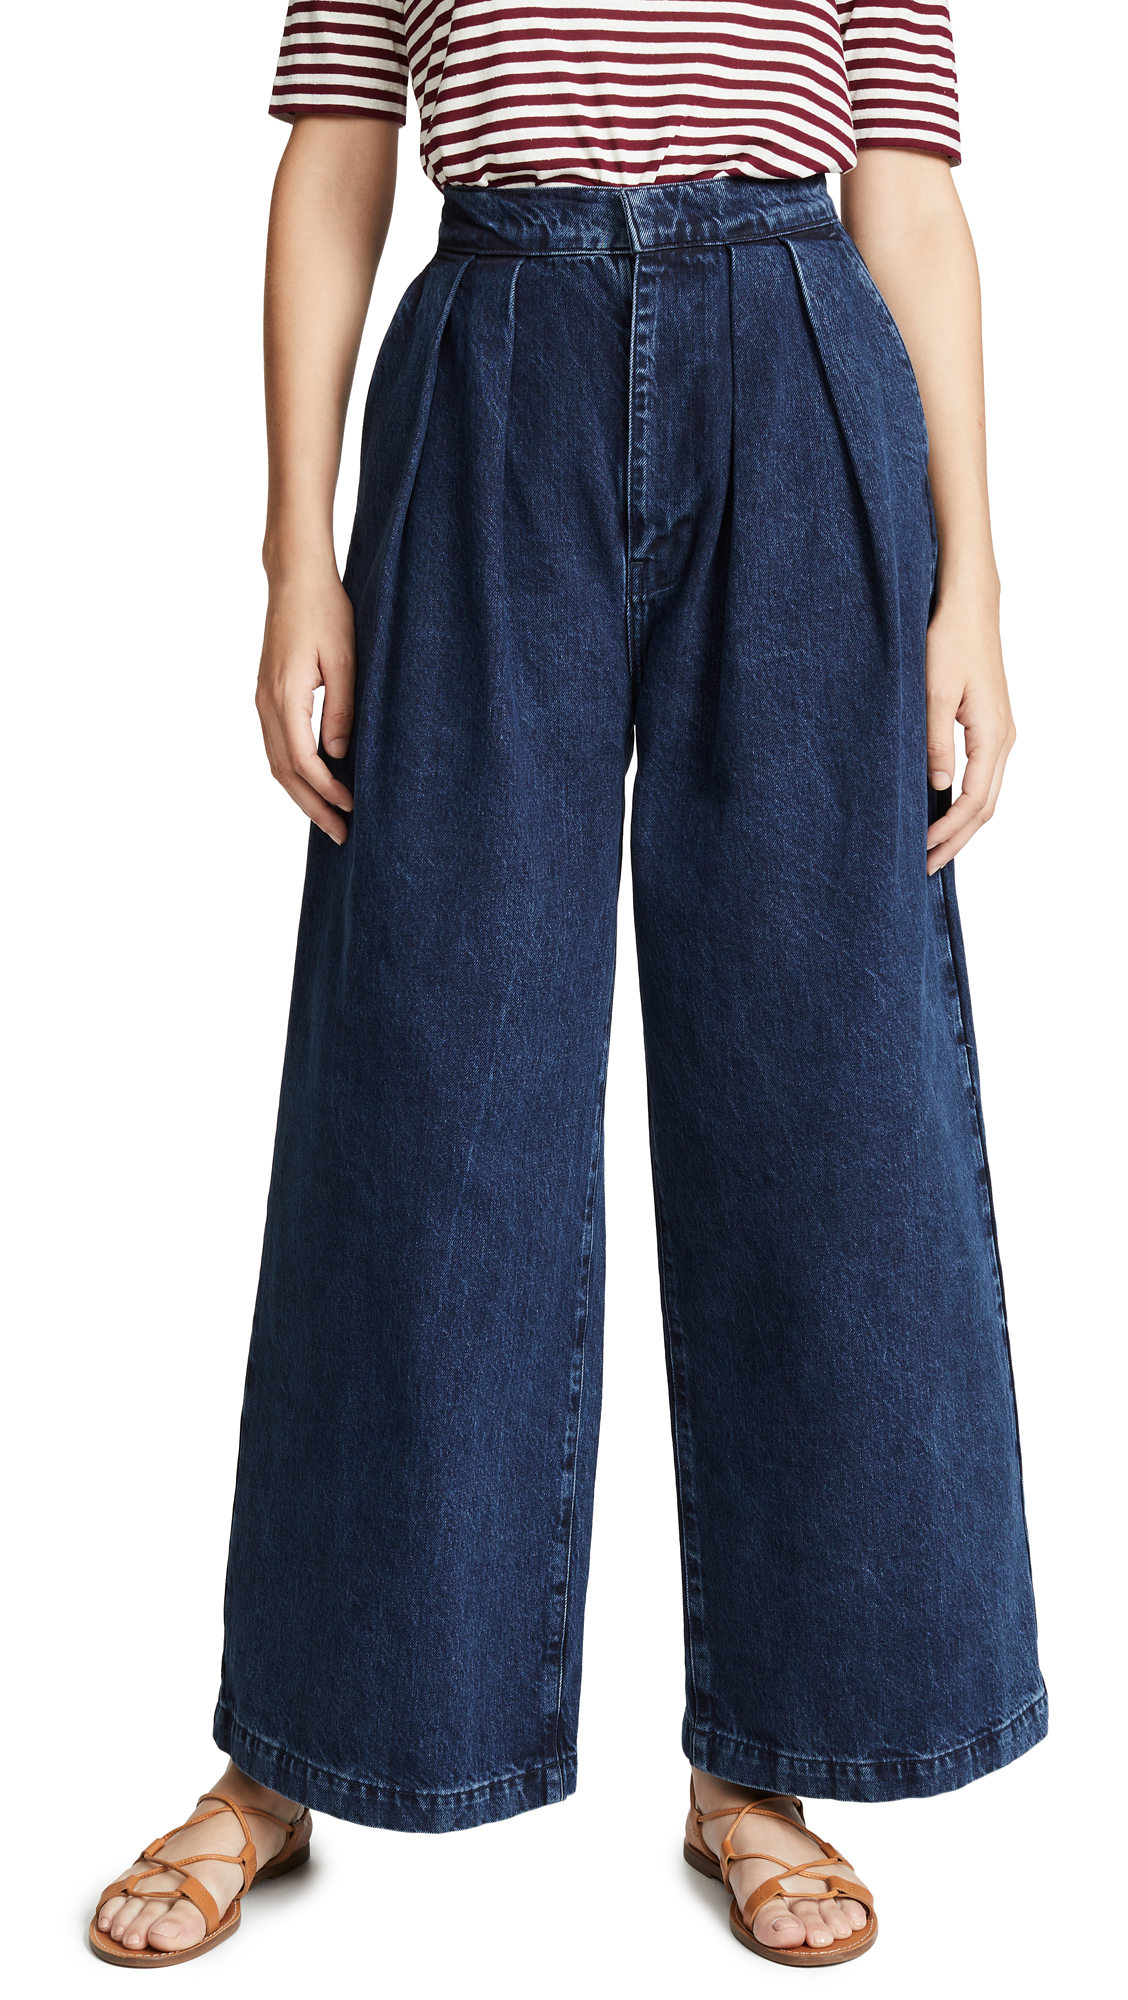 Levis Made & Crafted Passenger Jeans - Gypsy Night